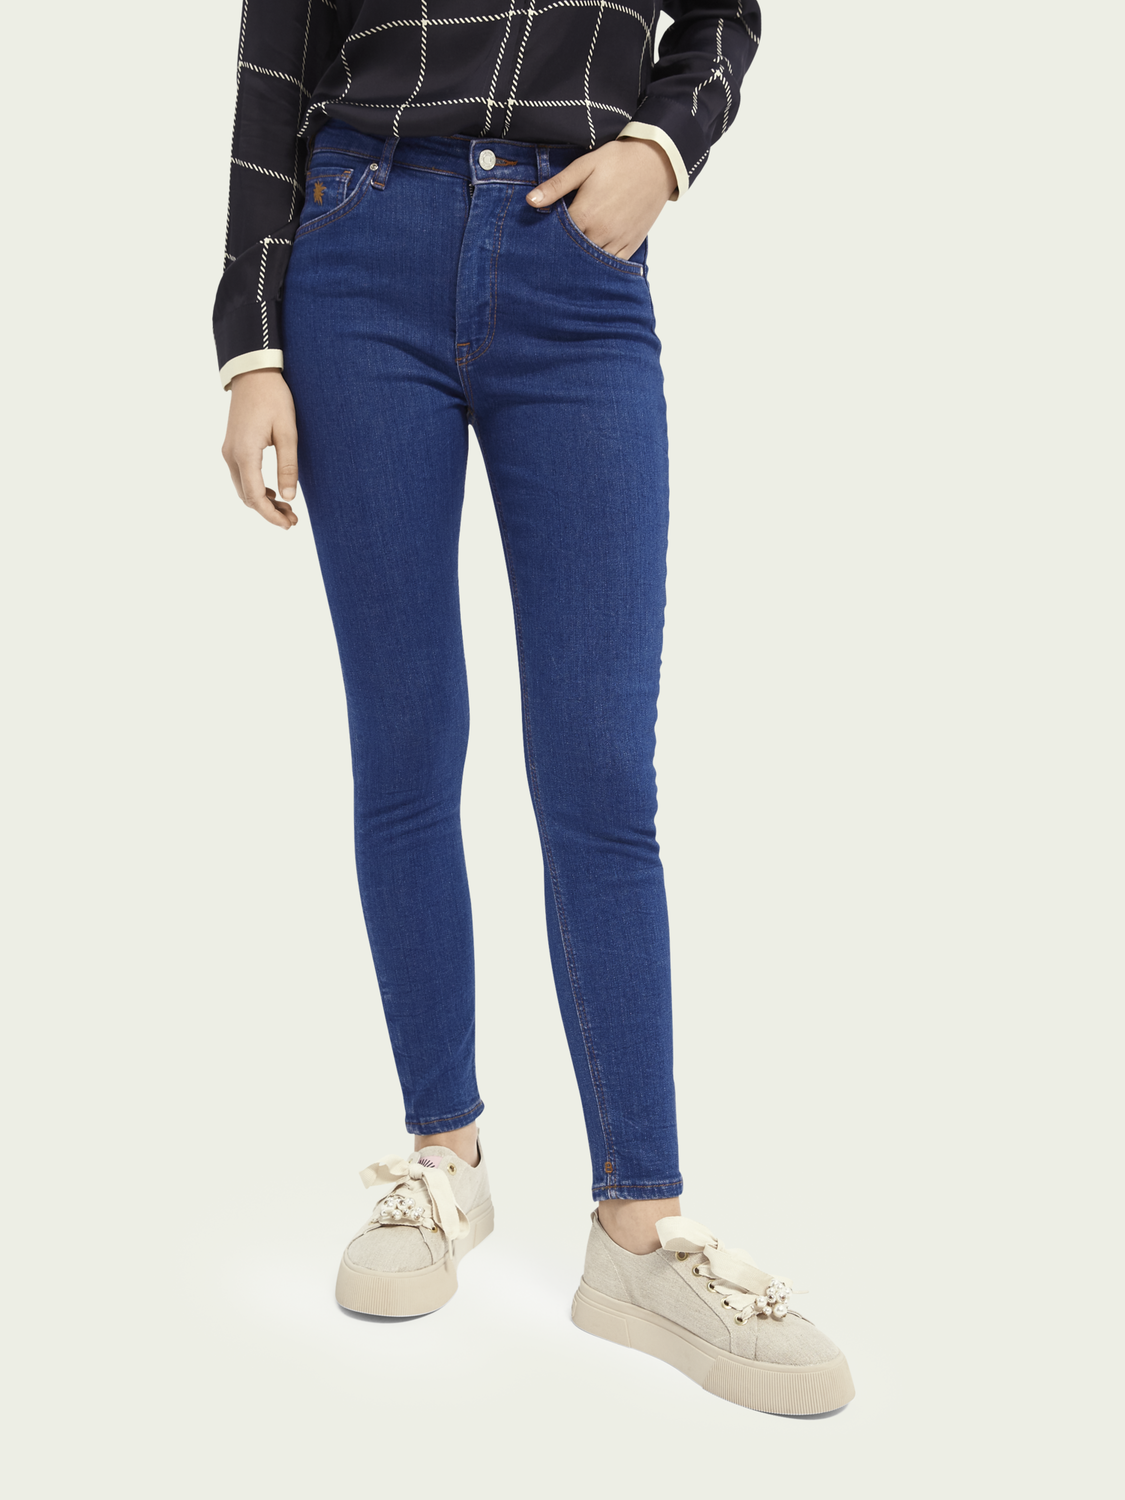 Damen Haut High-Rise Skinny Jeans – Tropic Night